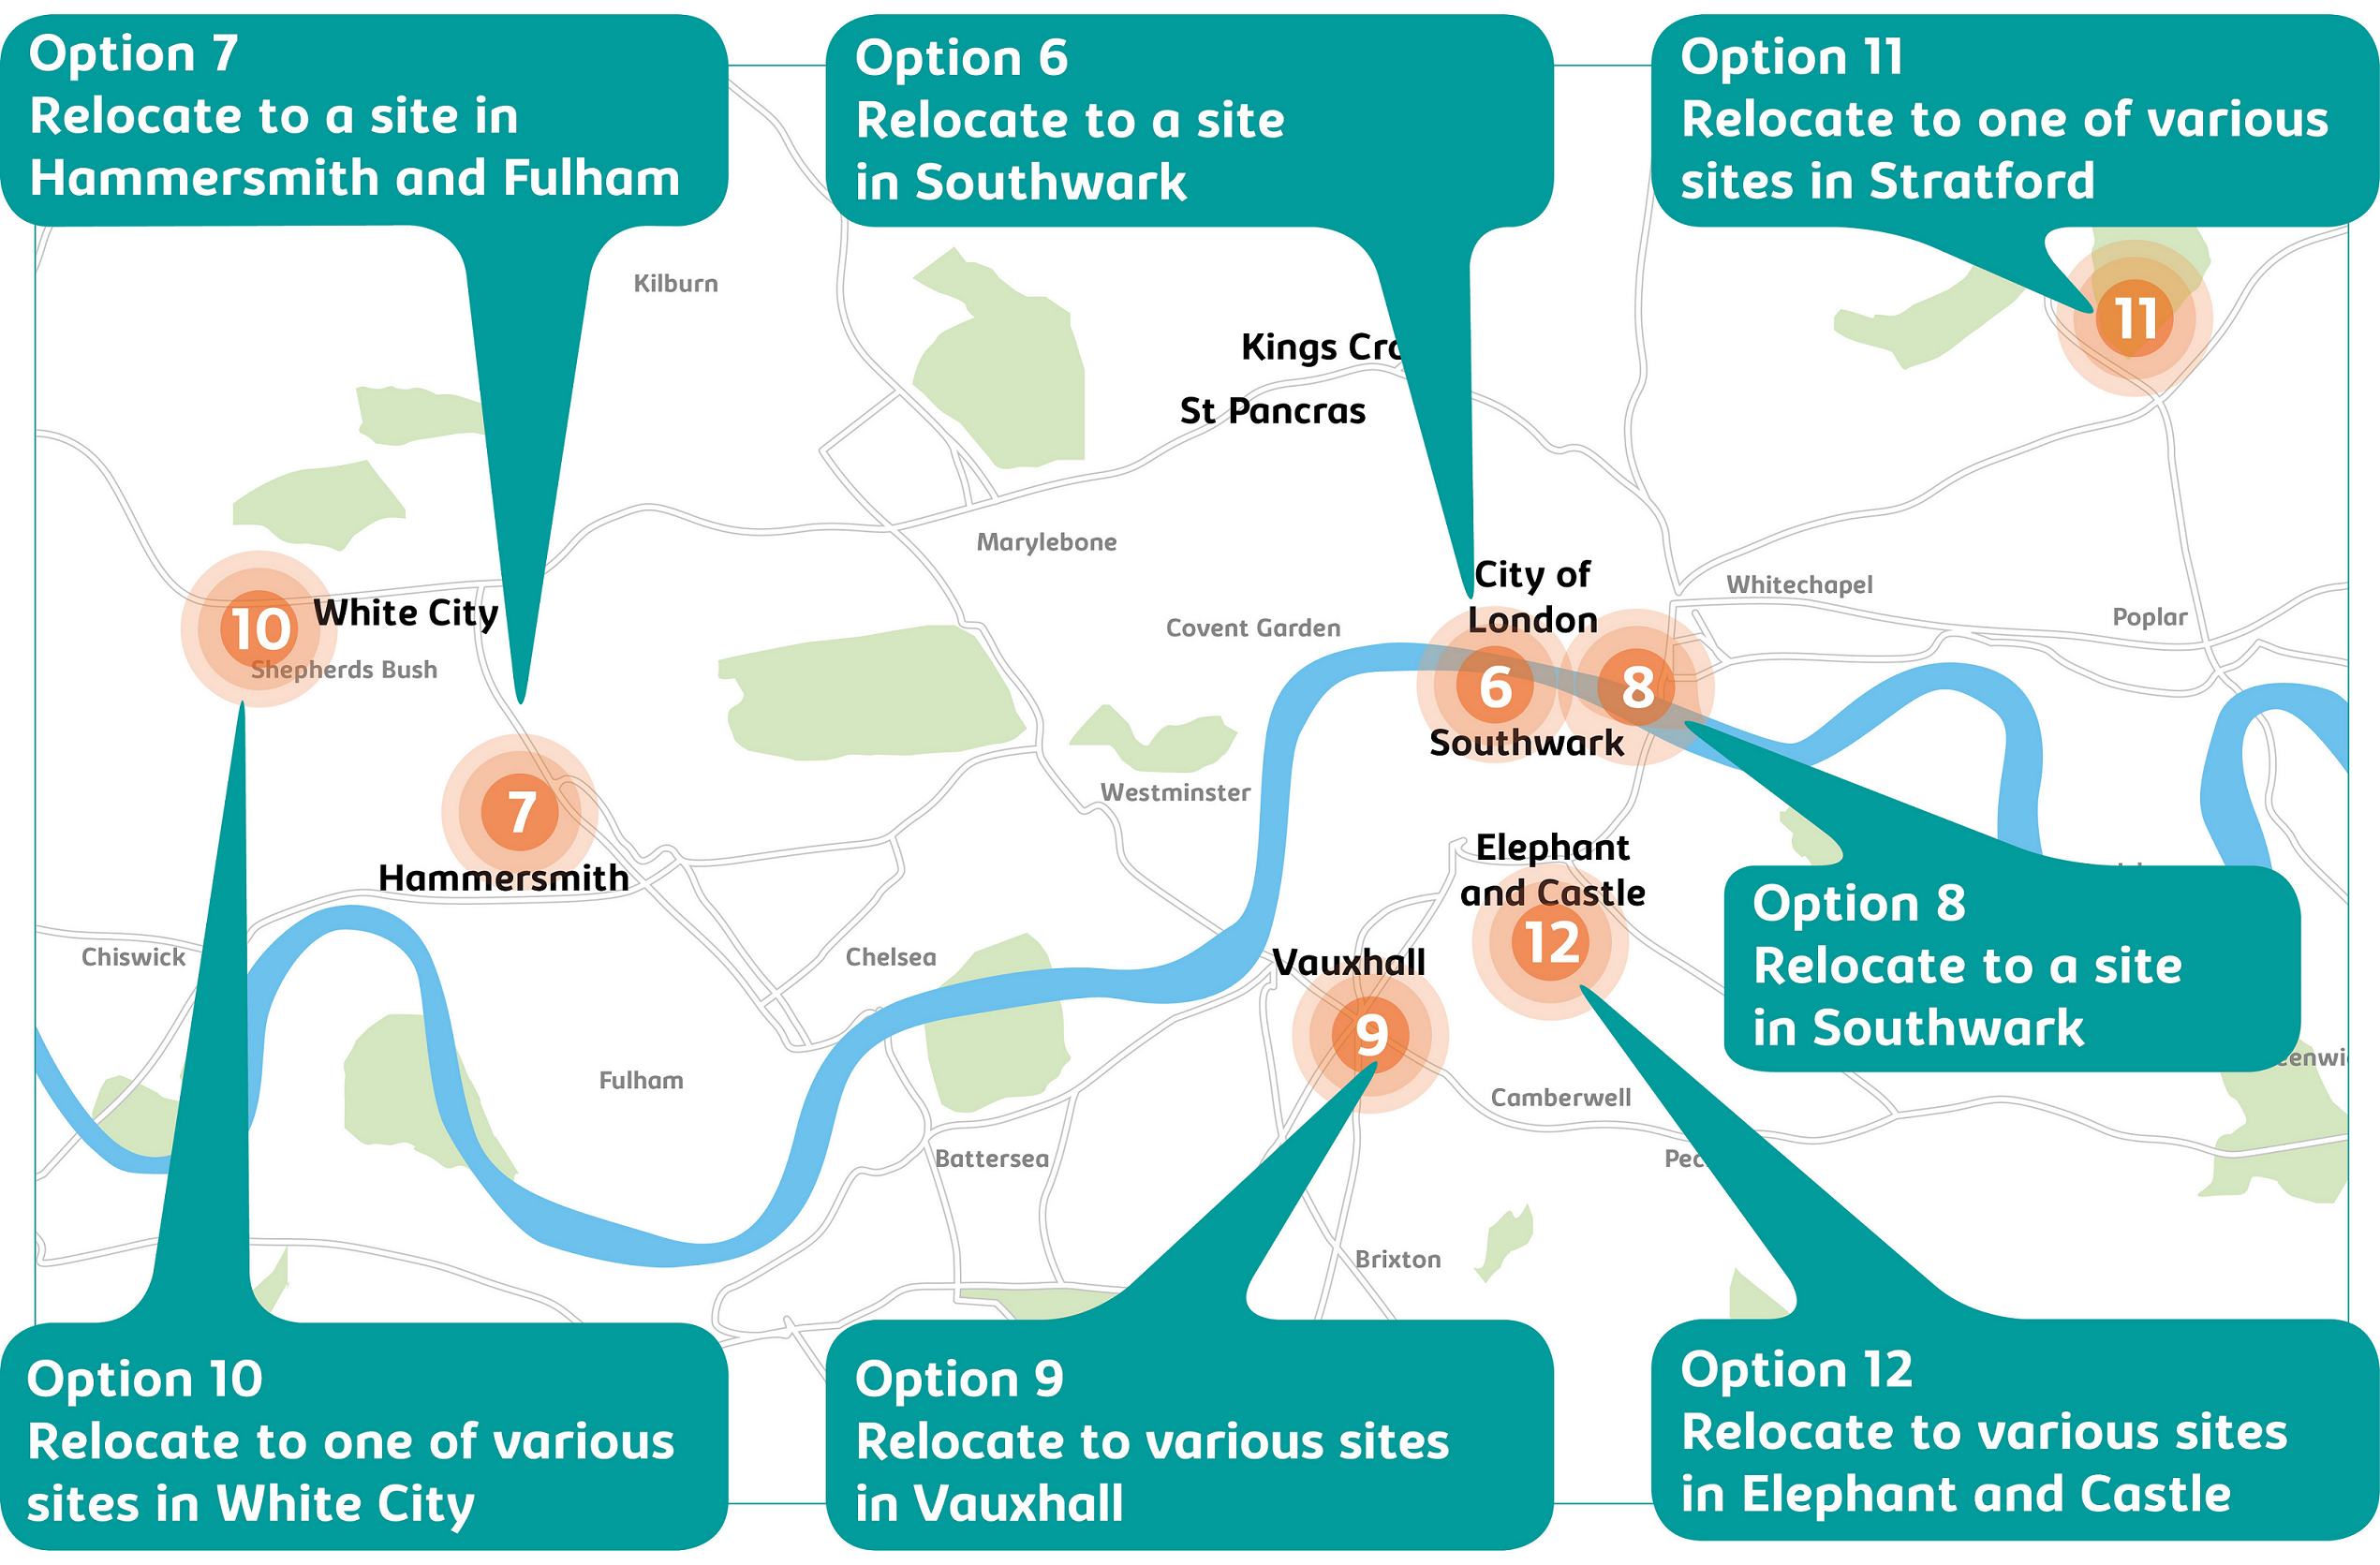 Map of options 6-12 across London. Option 6 - relocate to a site in Southwark; option 7 - relocate to a site in Hammersmith and Fulham; option 8 - relocate to a site in Southwark; option 9 - relocate to various sites in Vauxhall; option 10 - relocate to one of various sites in White City; option 11 - relocate to one of various sites in Stratford; option 12 - relocate to various sites in Elephant and Castle.